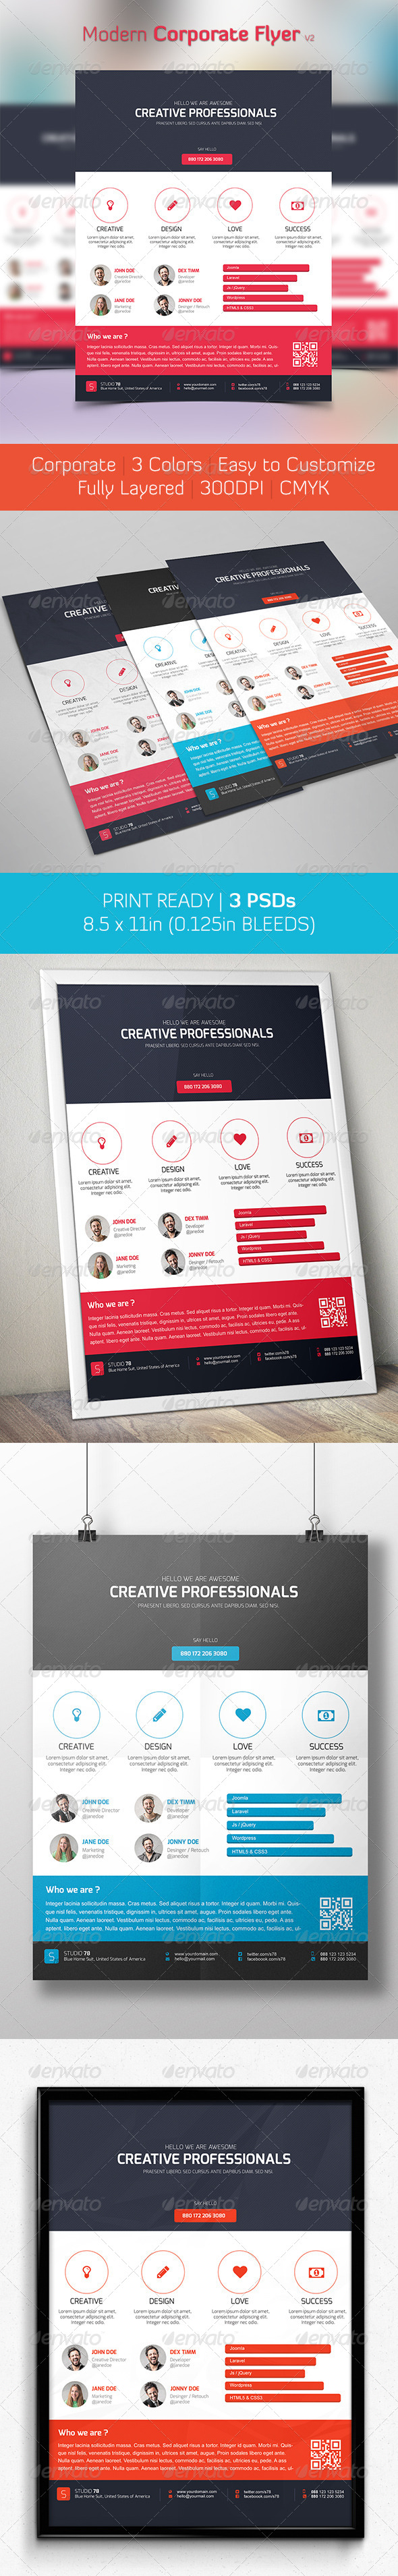 GraphicRiver Modern Corporate Flyer V2 6488360